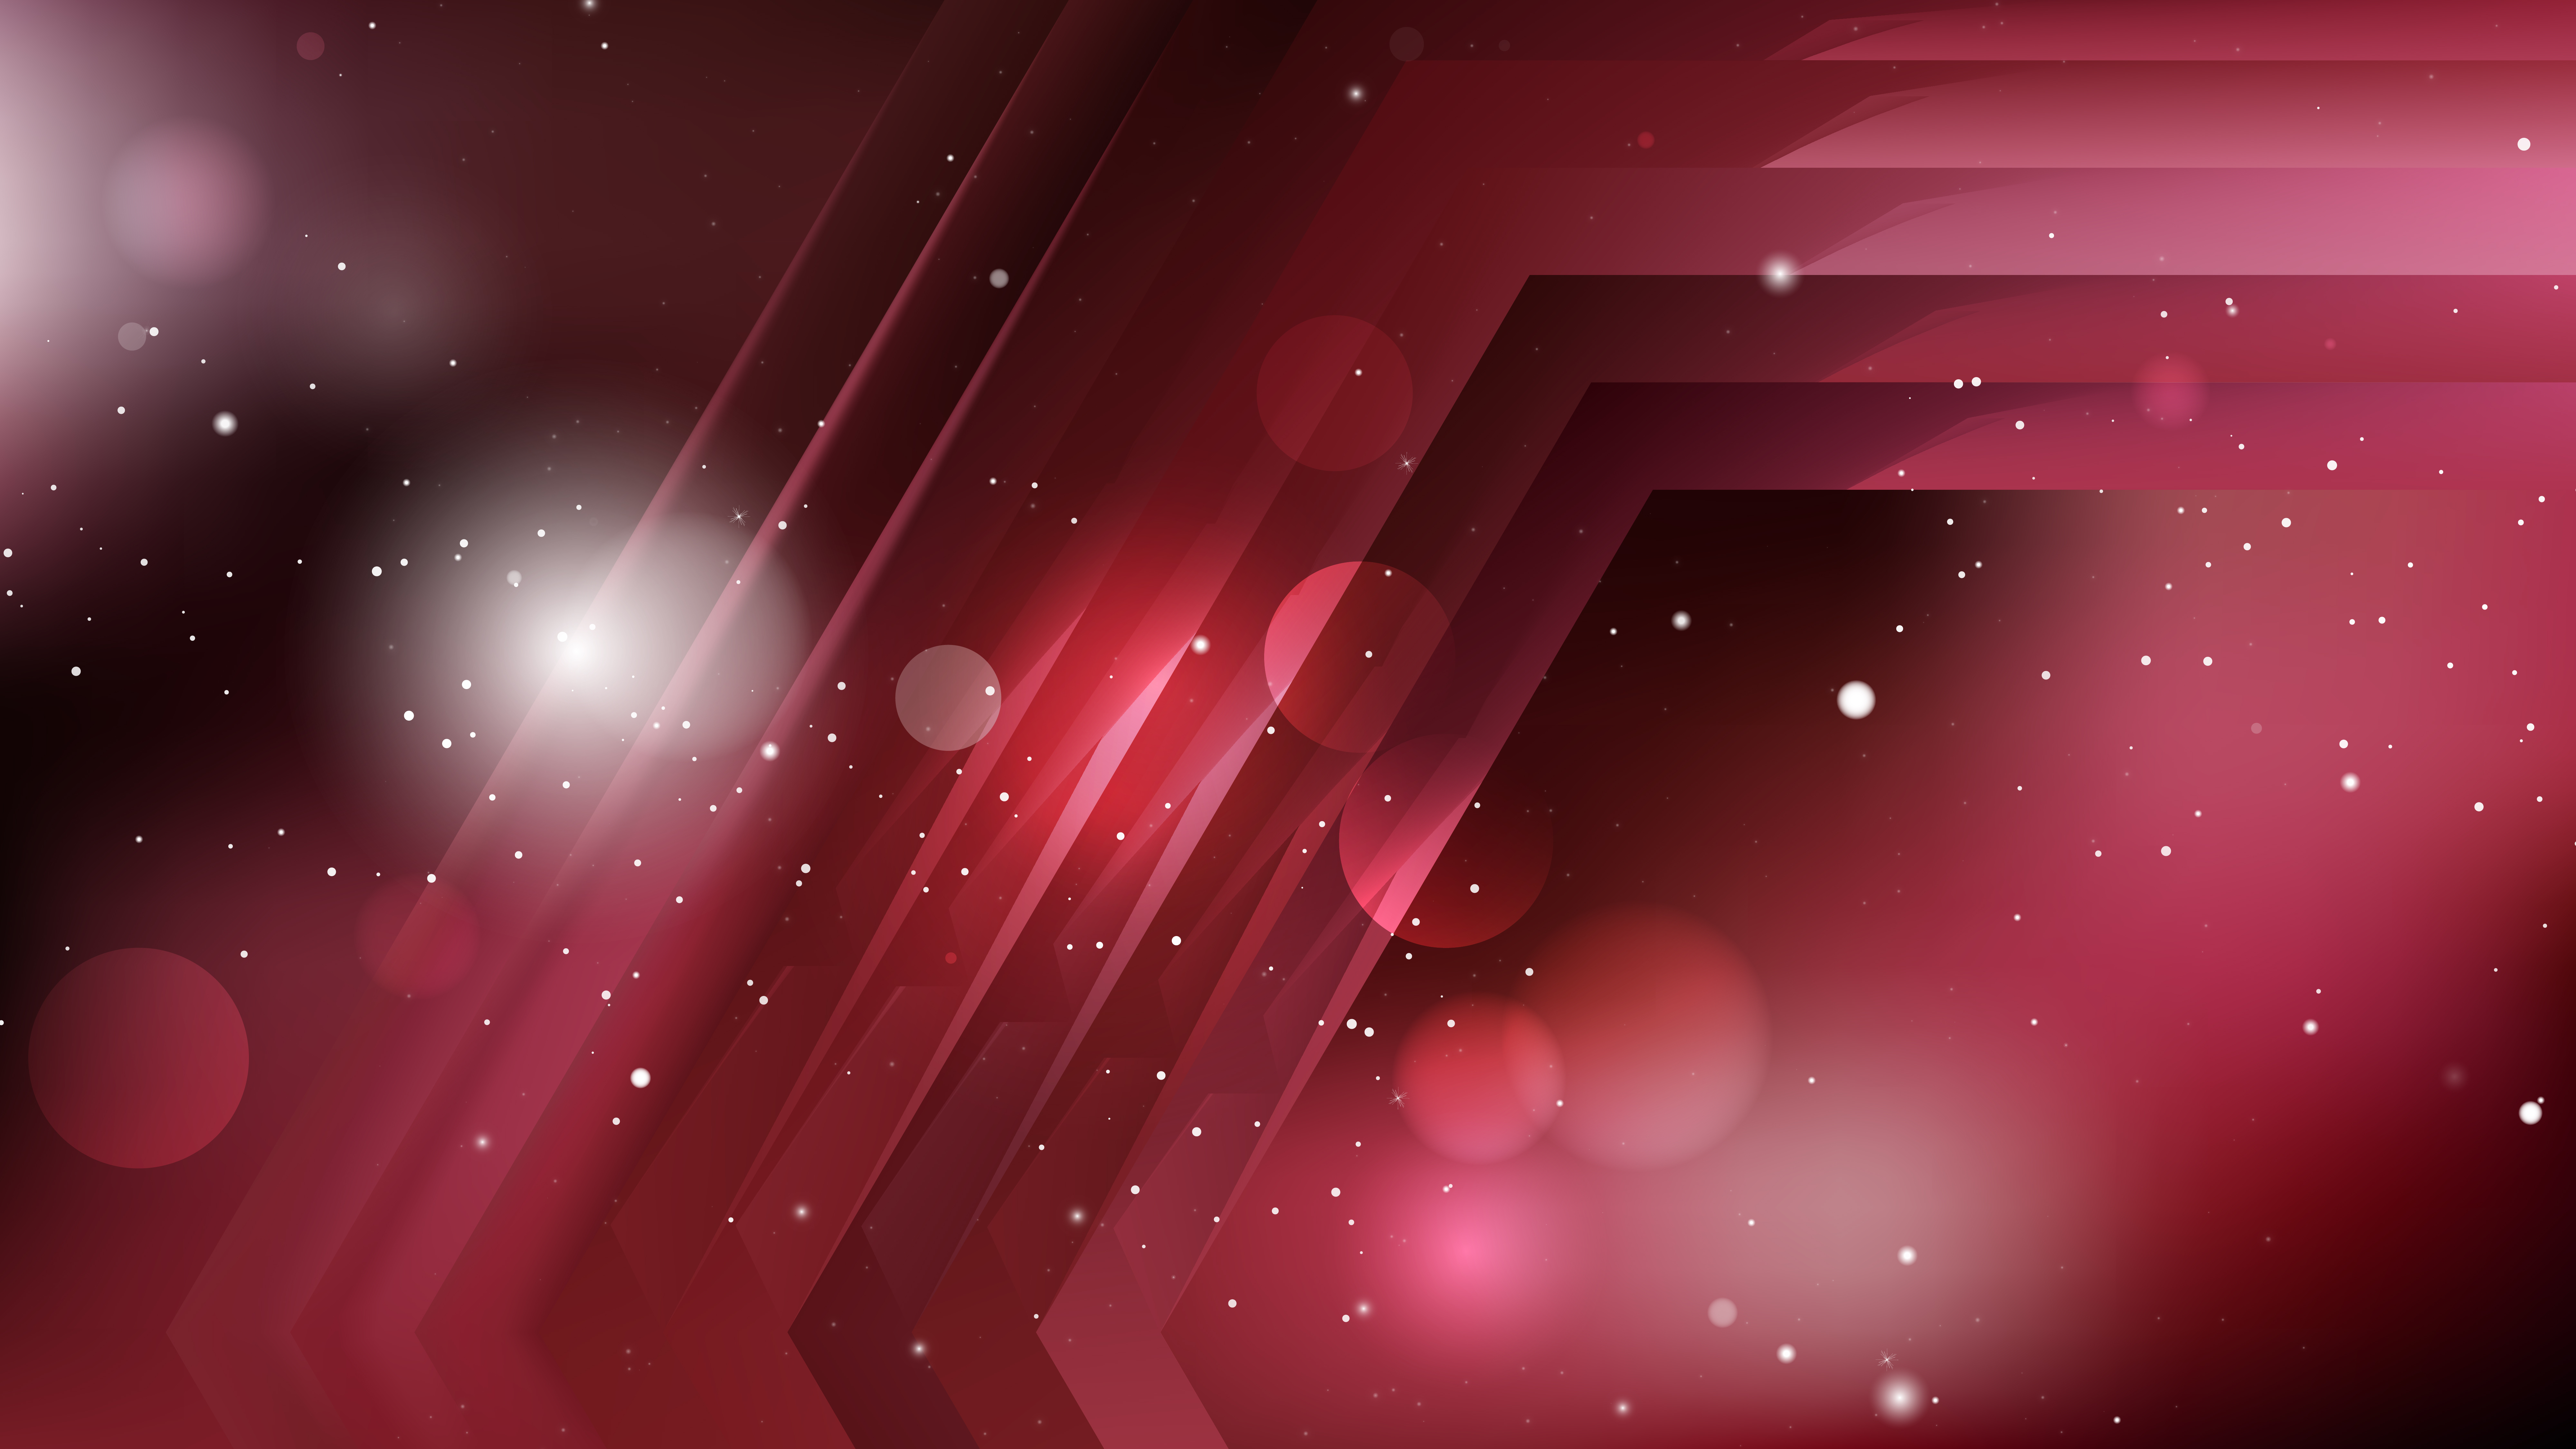 Abstract Red and Black Background Graphic Design 8000x4500